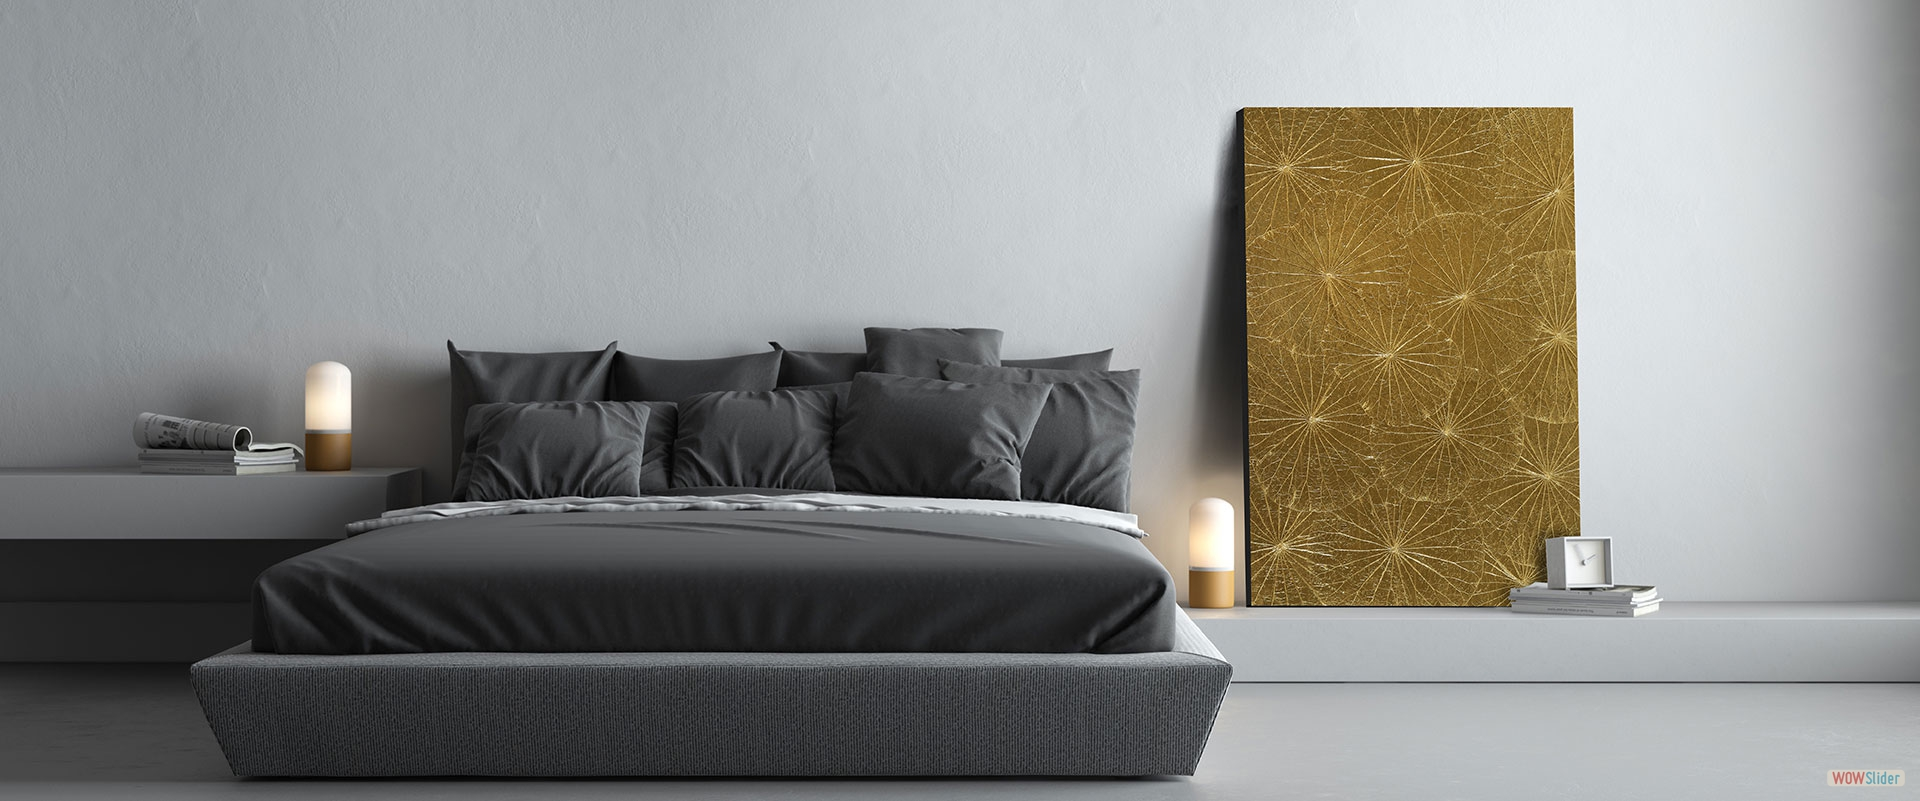 Wandbild Lotus gold